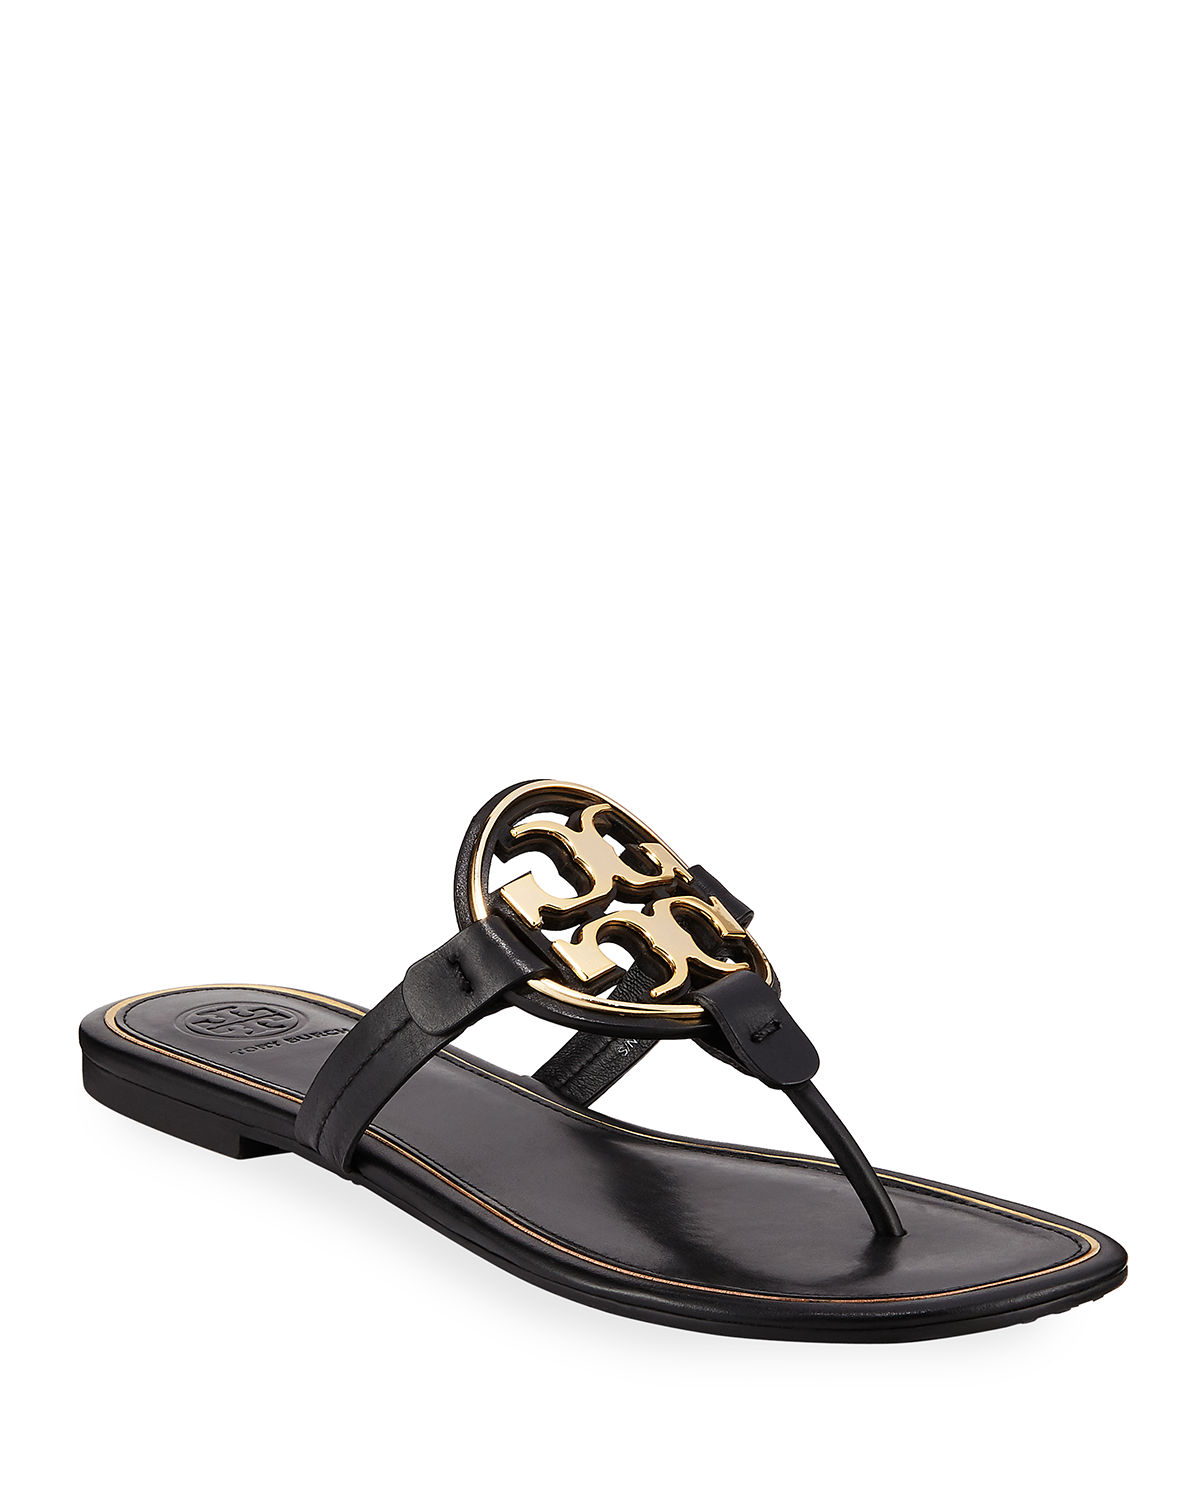 7acde9de963 Tory Burch Miller Flat Metal Logo Slide Sandals